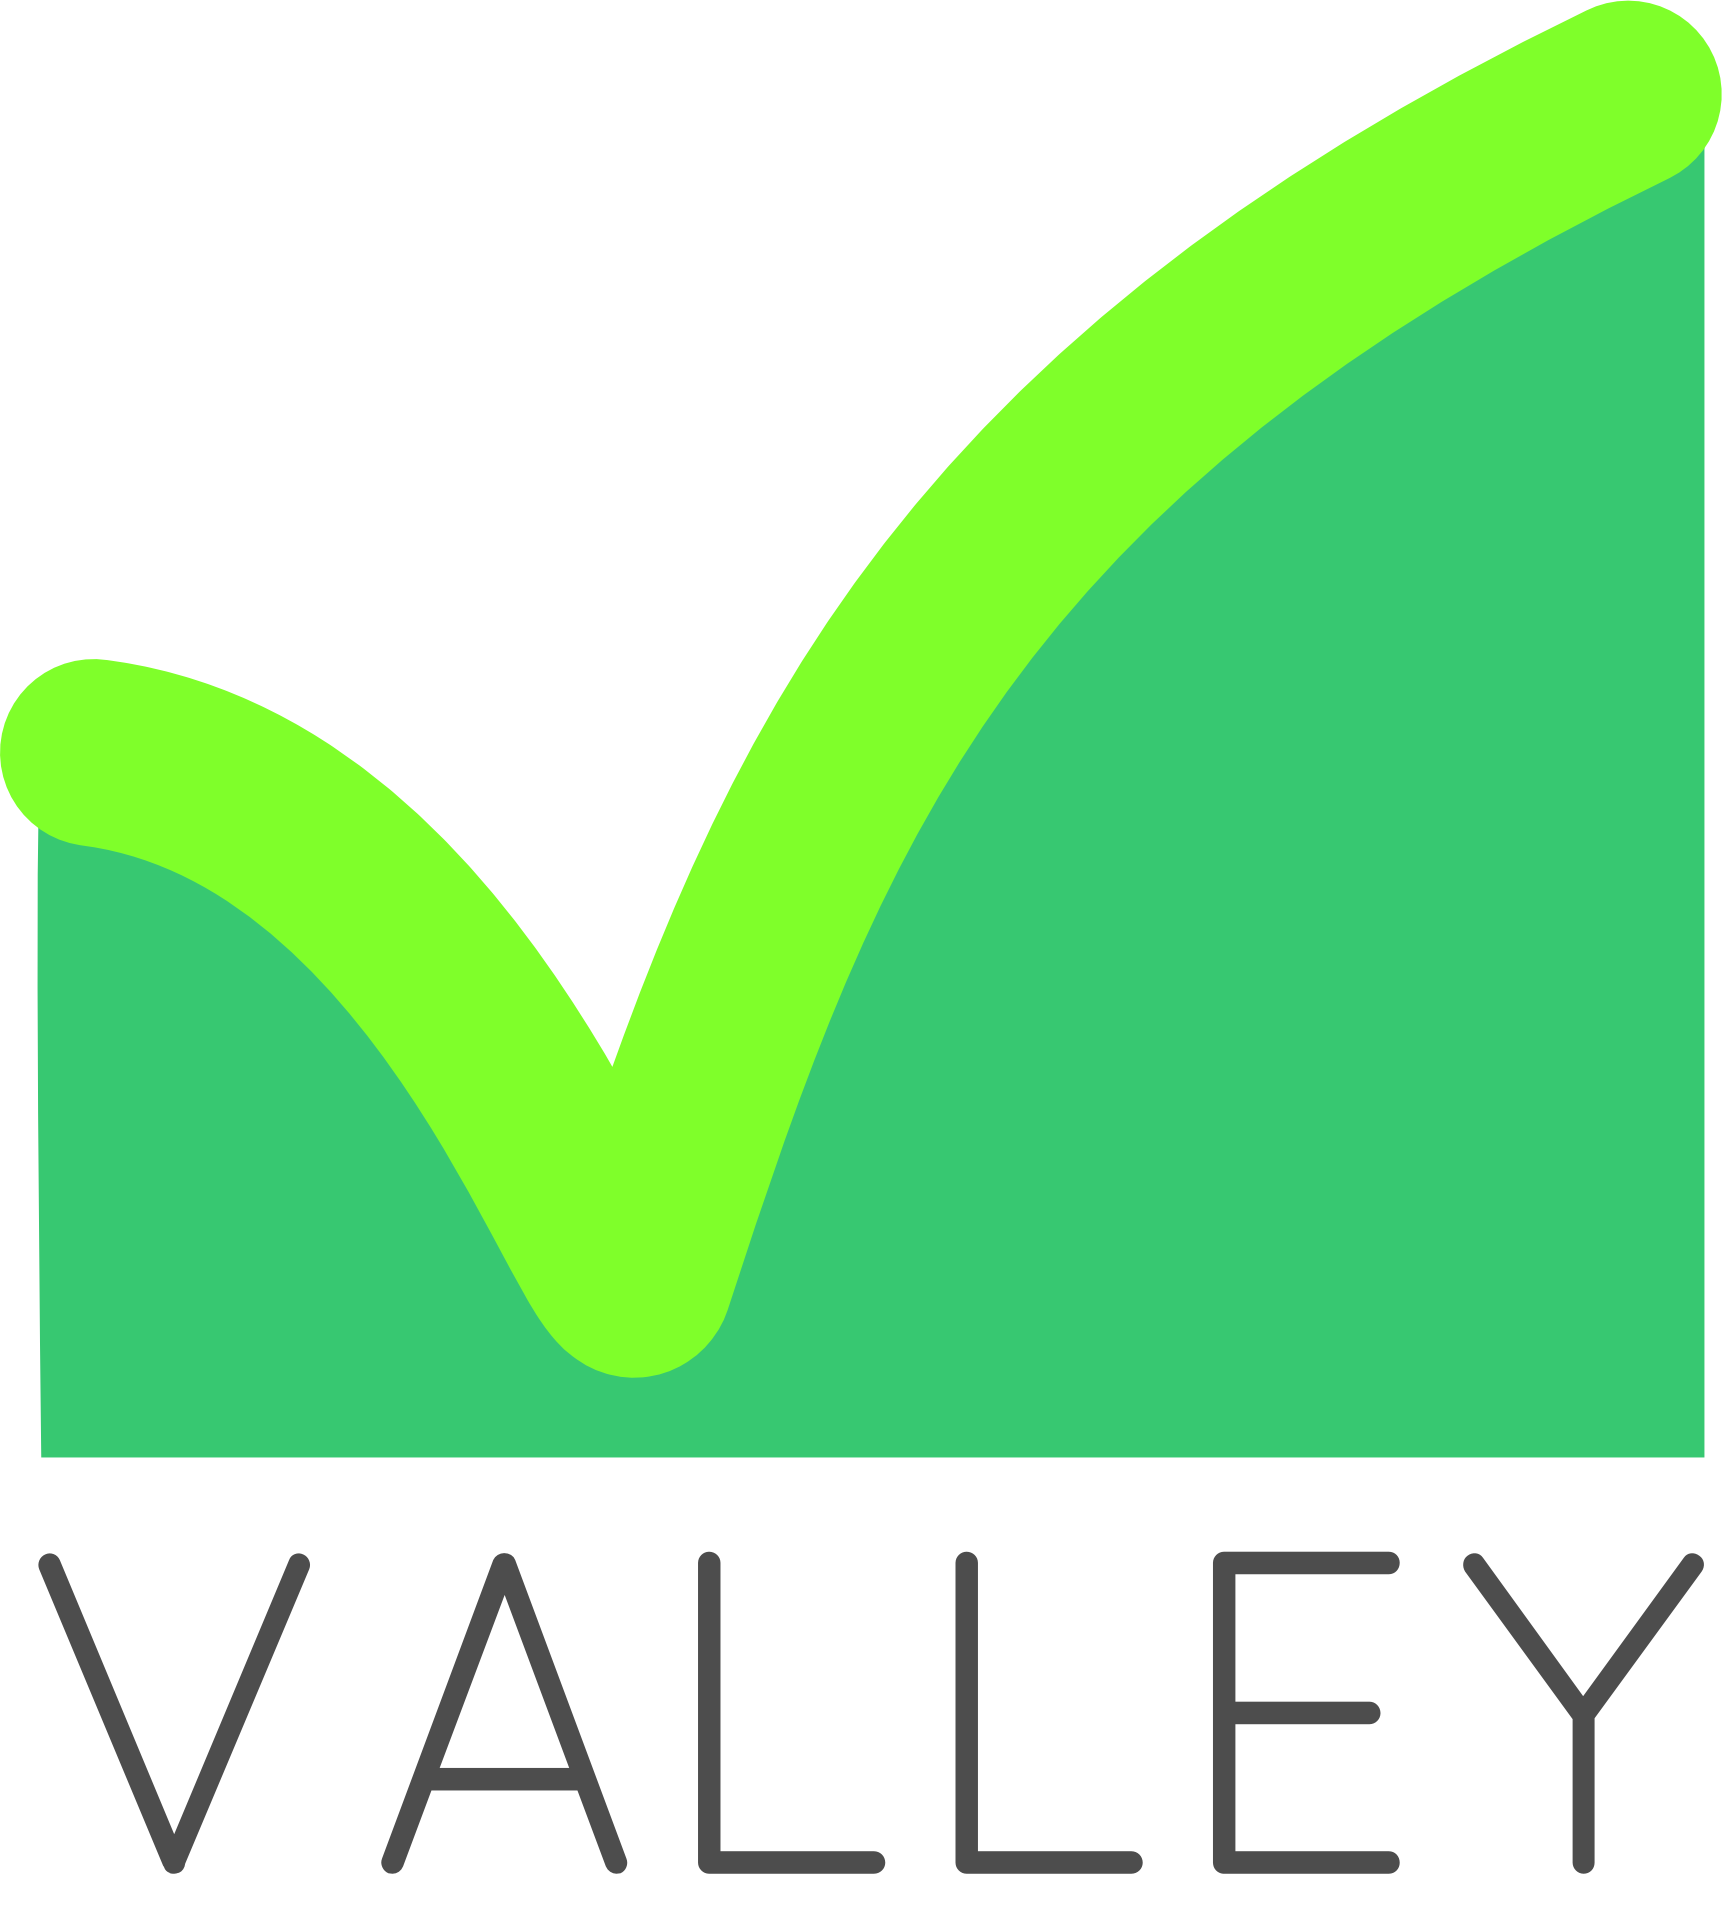 logo_valley_hell_300dpi